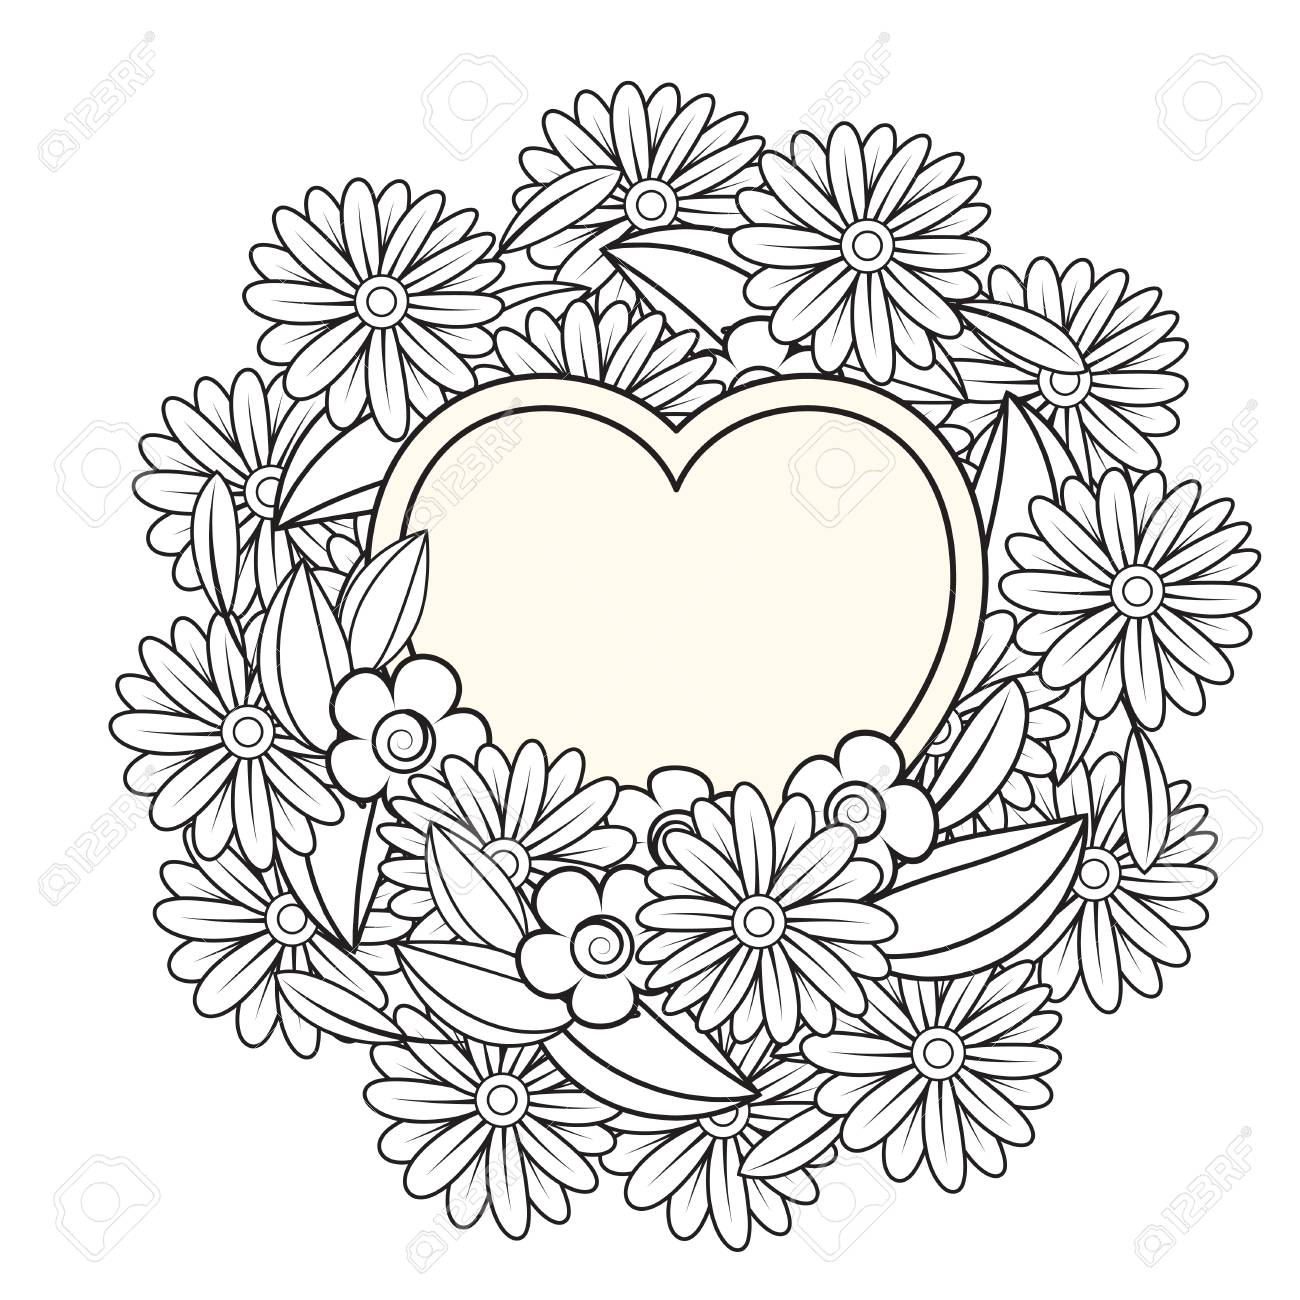 Floral Heart Valentines Day Adult Coloring Page Vector Illustration Royalty Free Cliparts Vectors And Stock Illustration Image 125773666